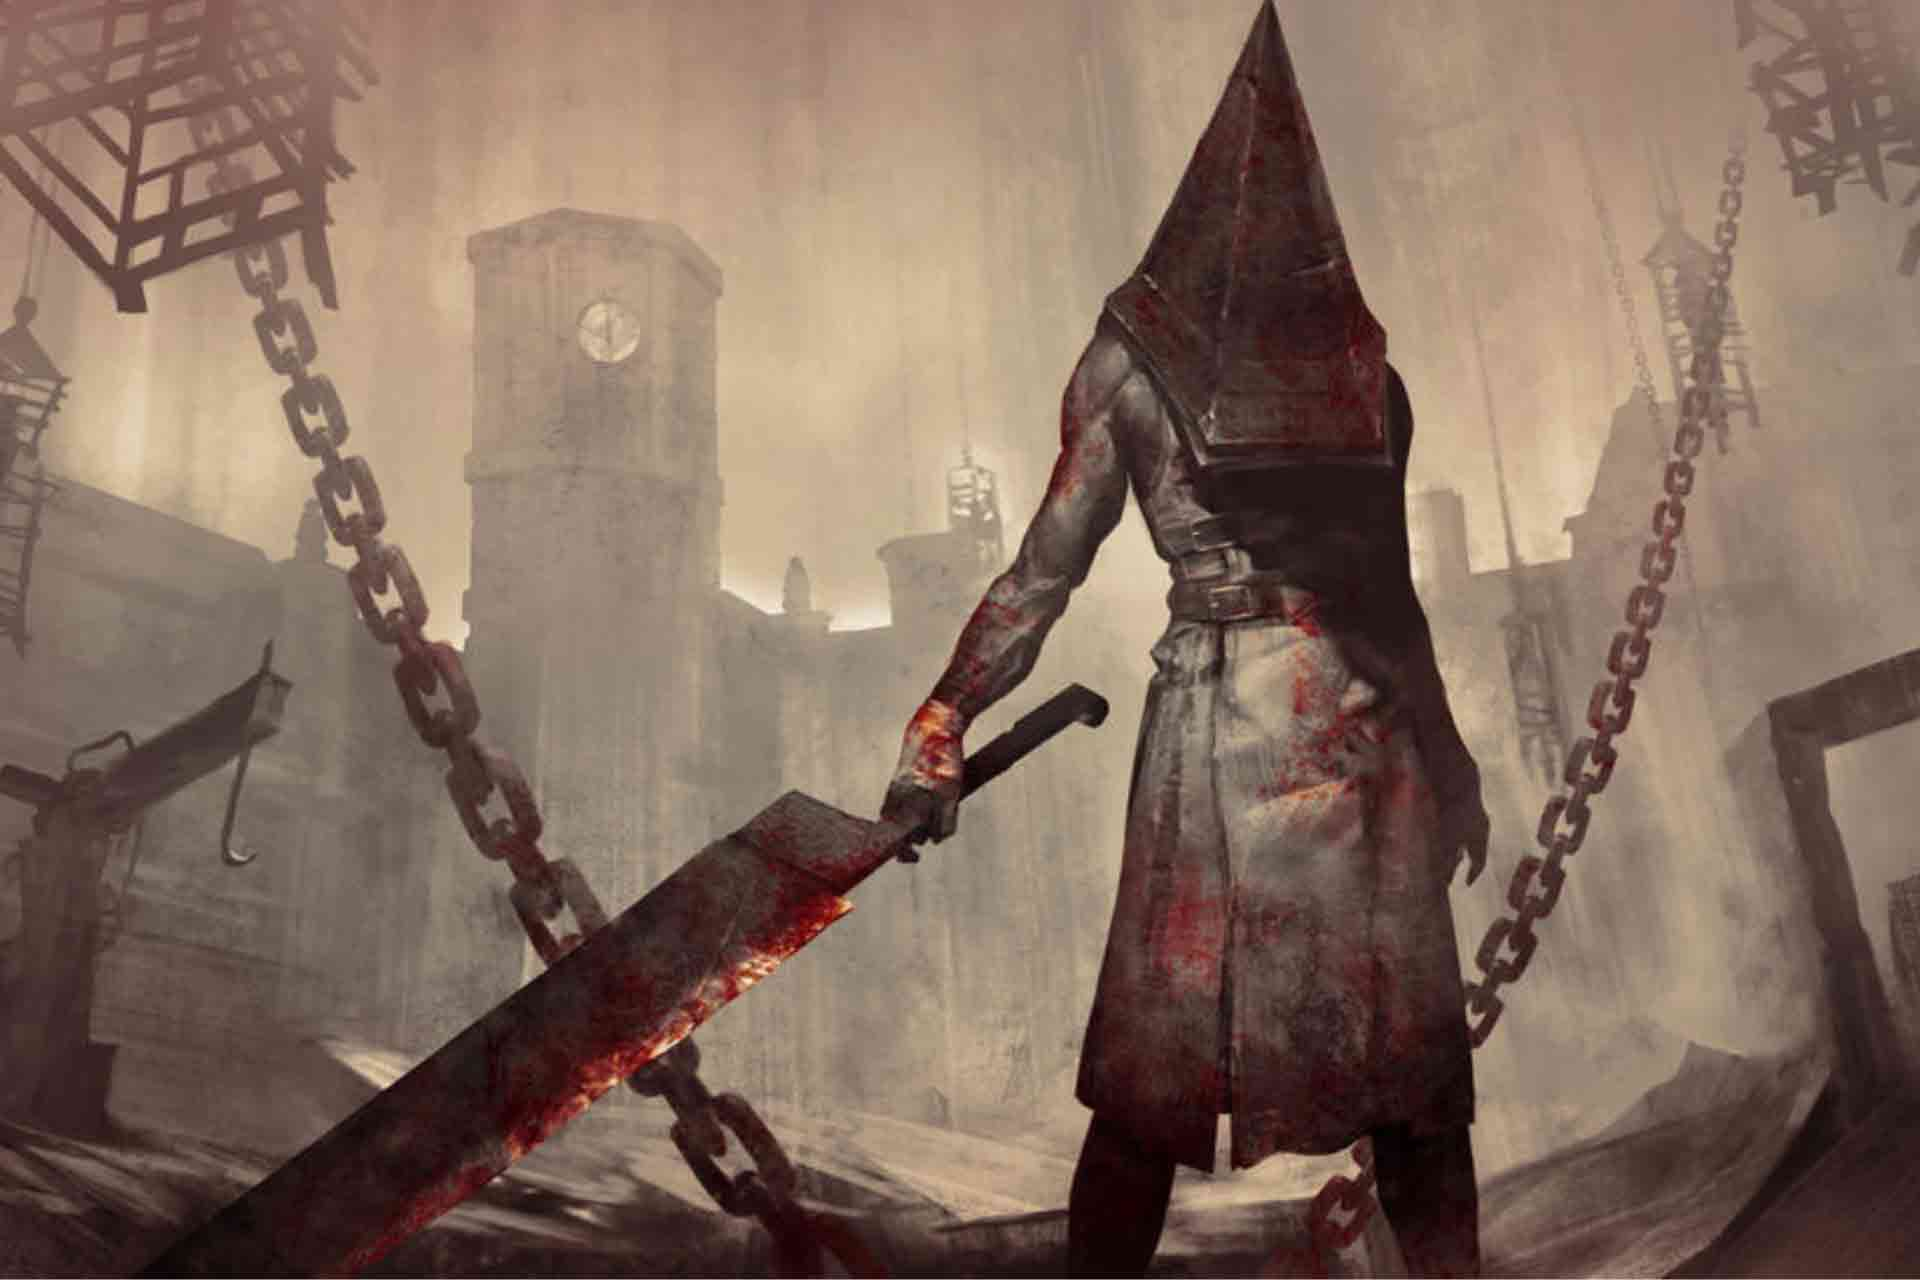 The Pyramid Head from the Silent Hill series as The Executioner in Dead by Daylight game.